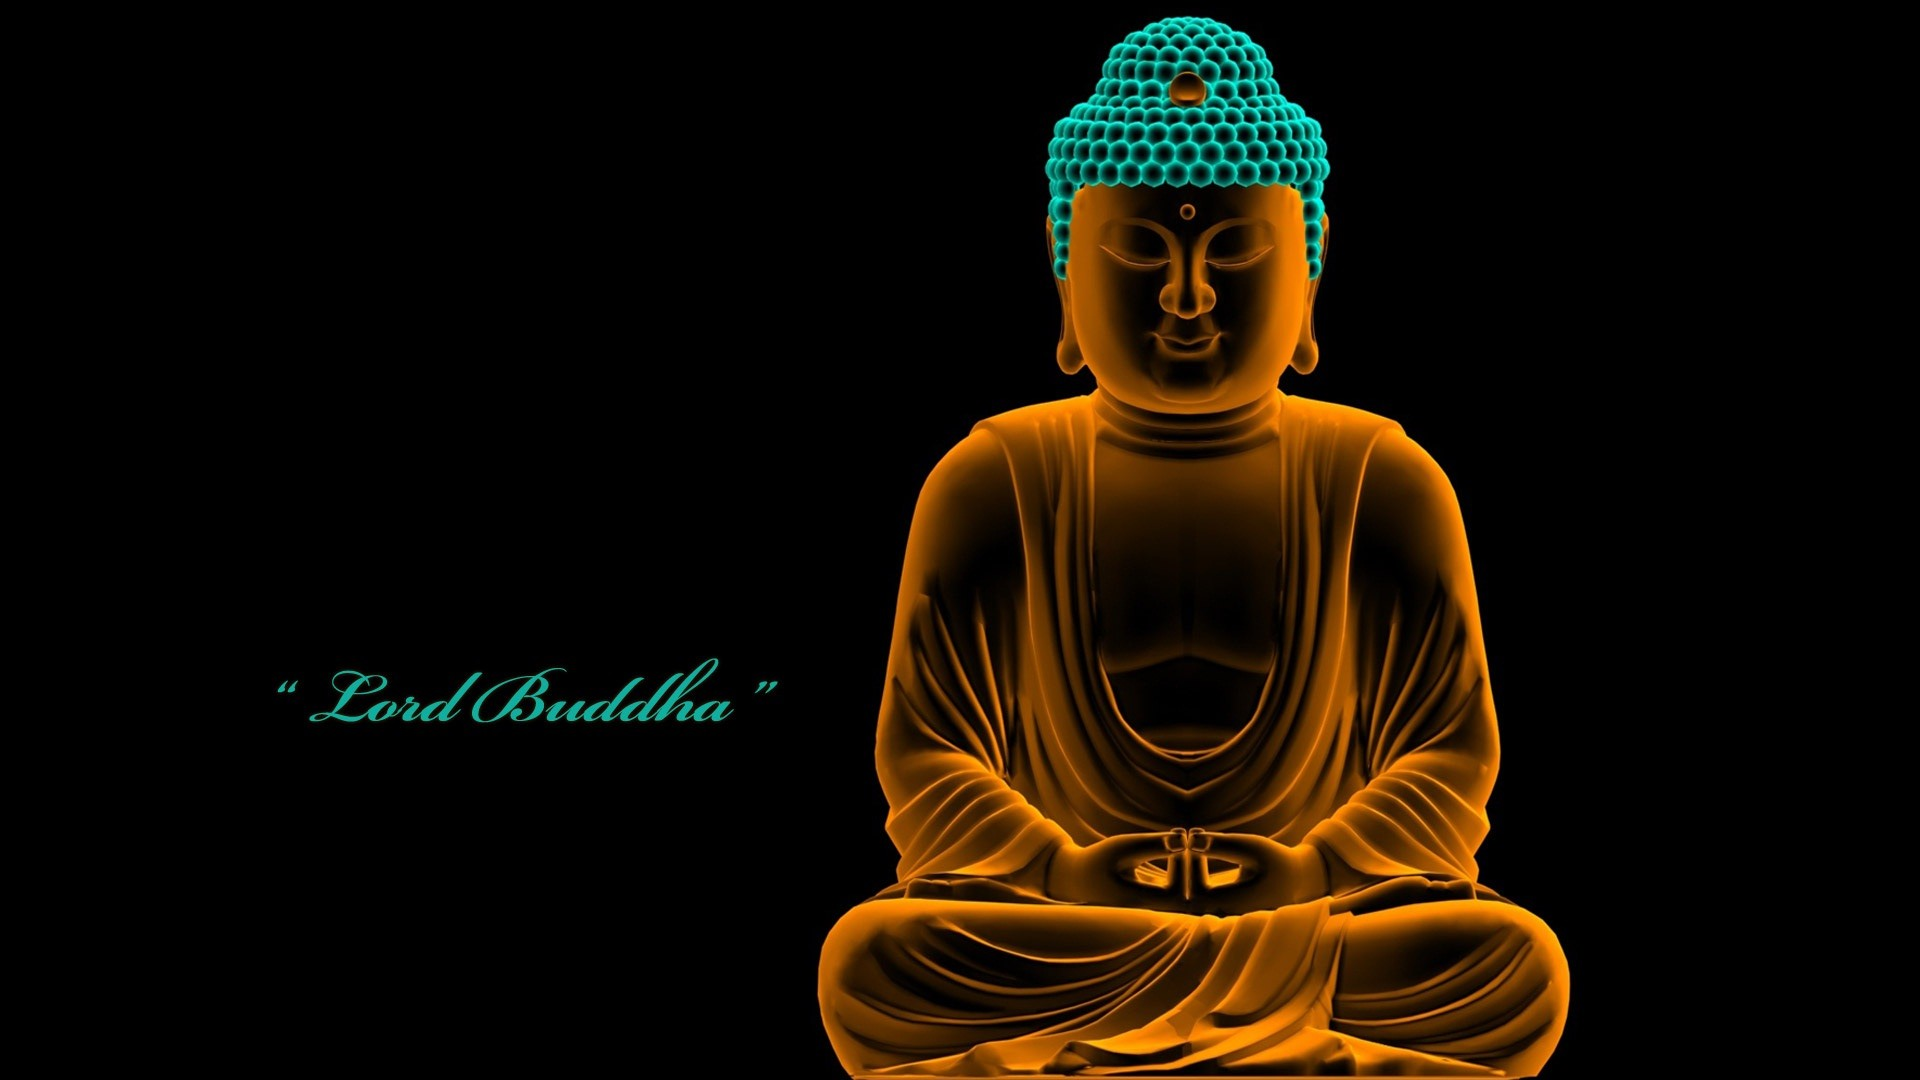 Lord Buddha Live 3D Wallpaper   New HD Wallpapers 1920x1080